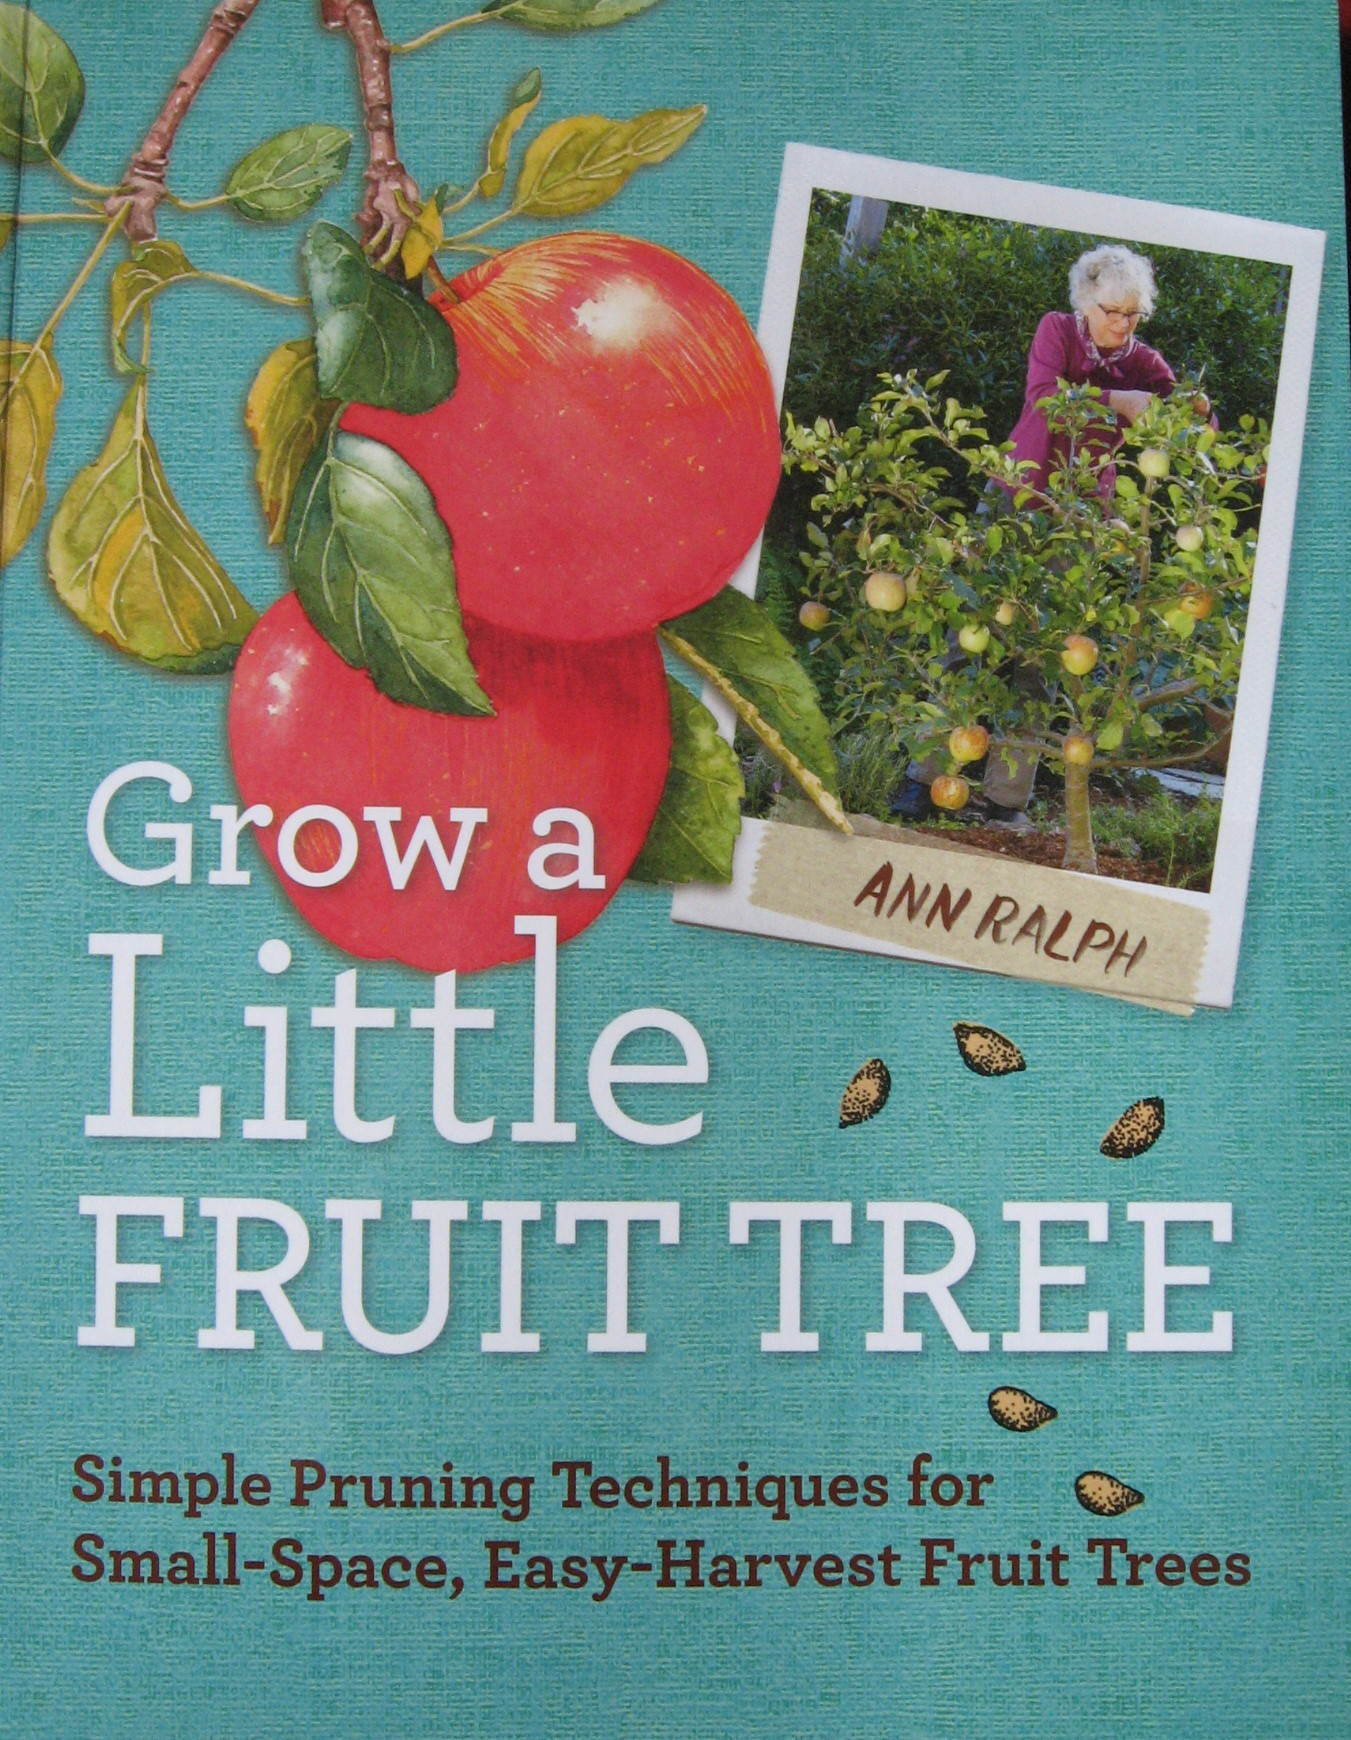 Grow a Little Fruit Tree- Book Review